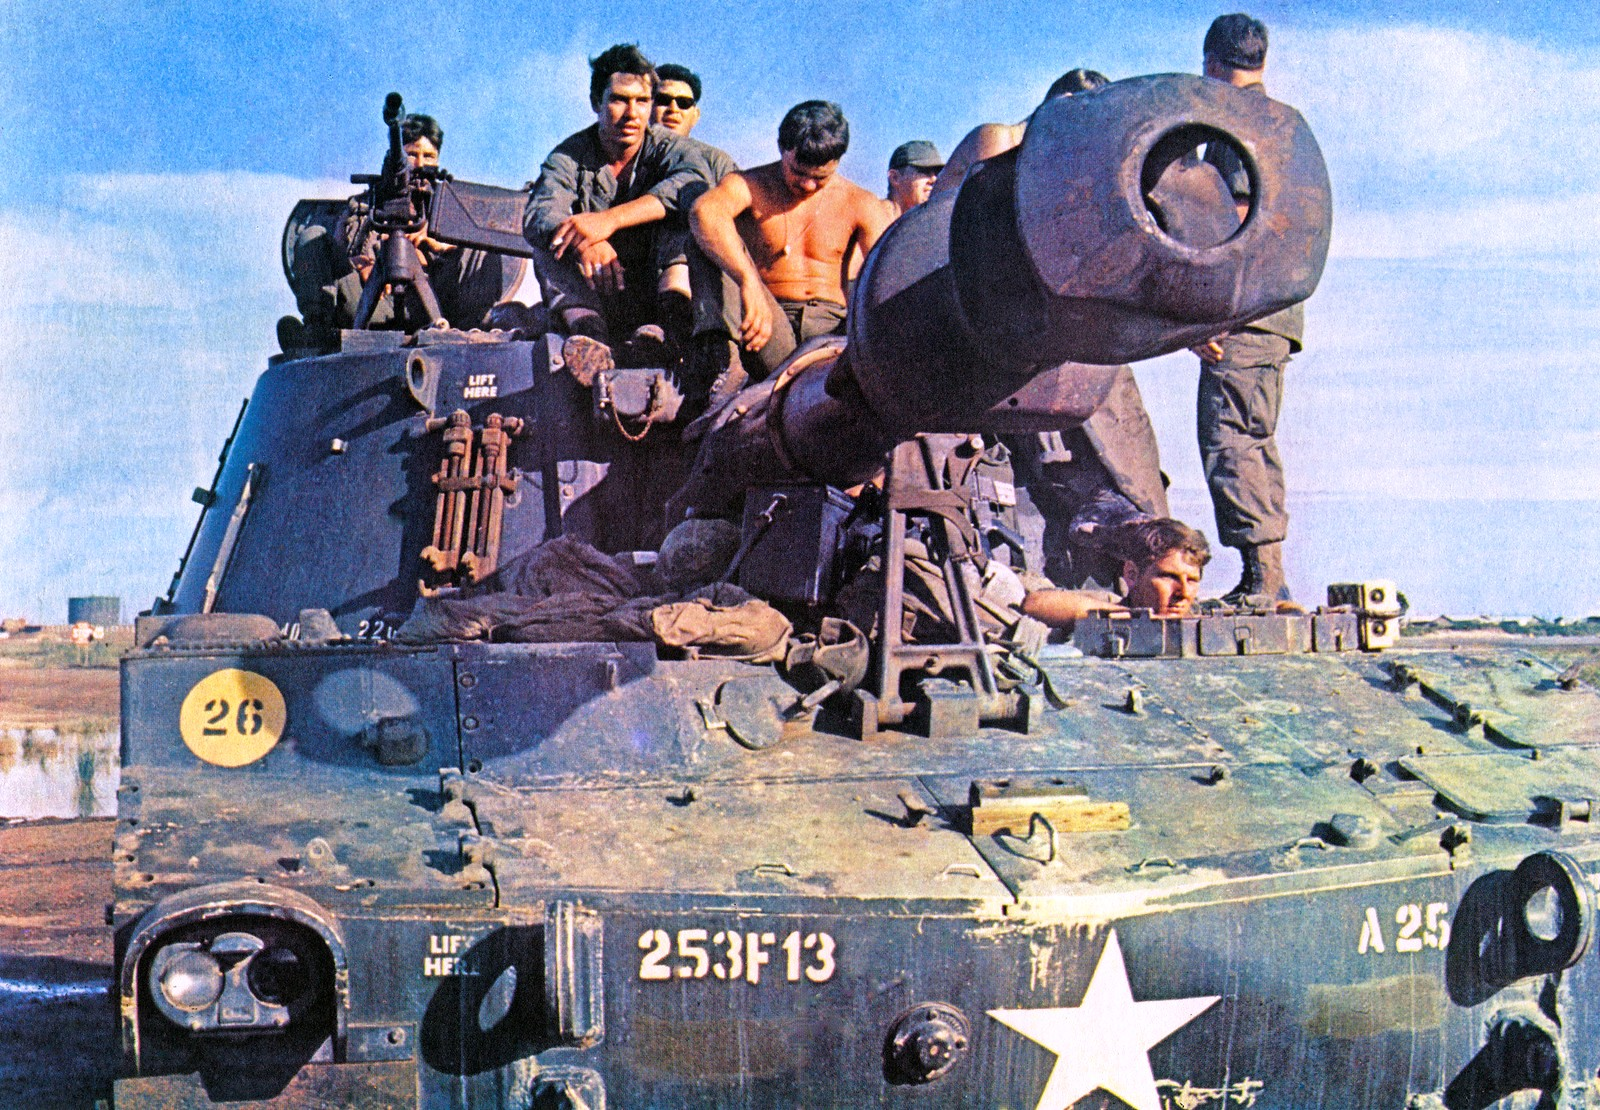 M109 SPH, BUMPER # A25, 3/13 FA, 25TH INF DIV, at Cu Chi base camp. 25TH INF DIV photo.